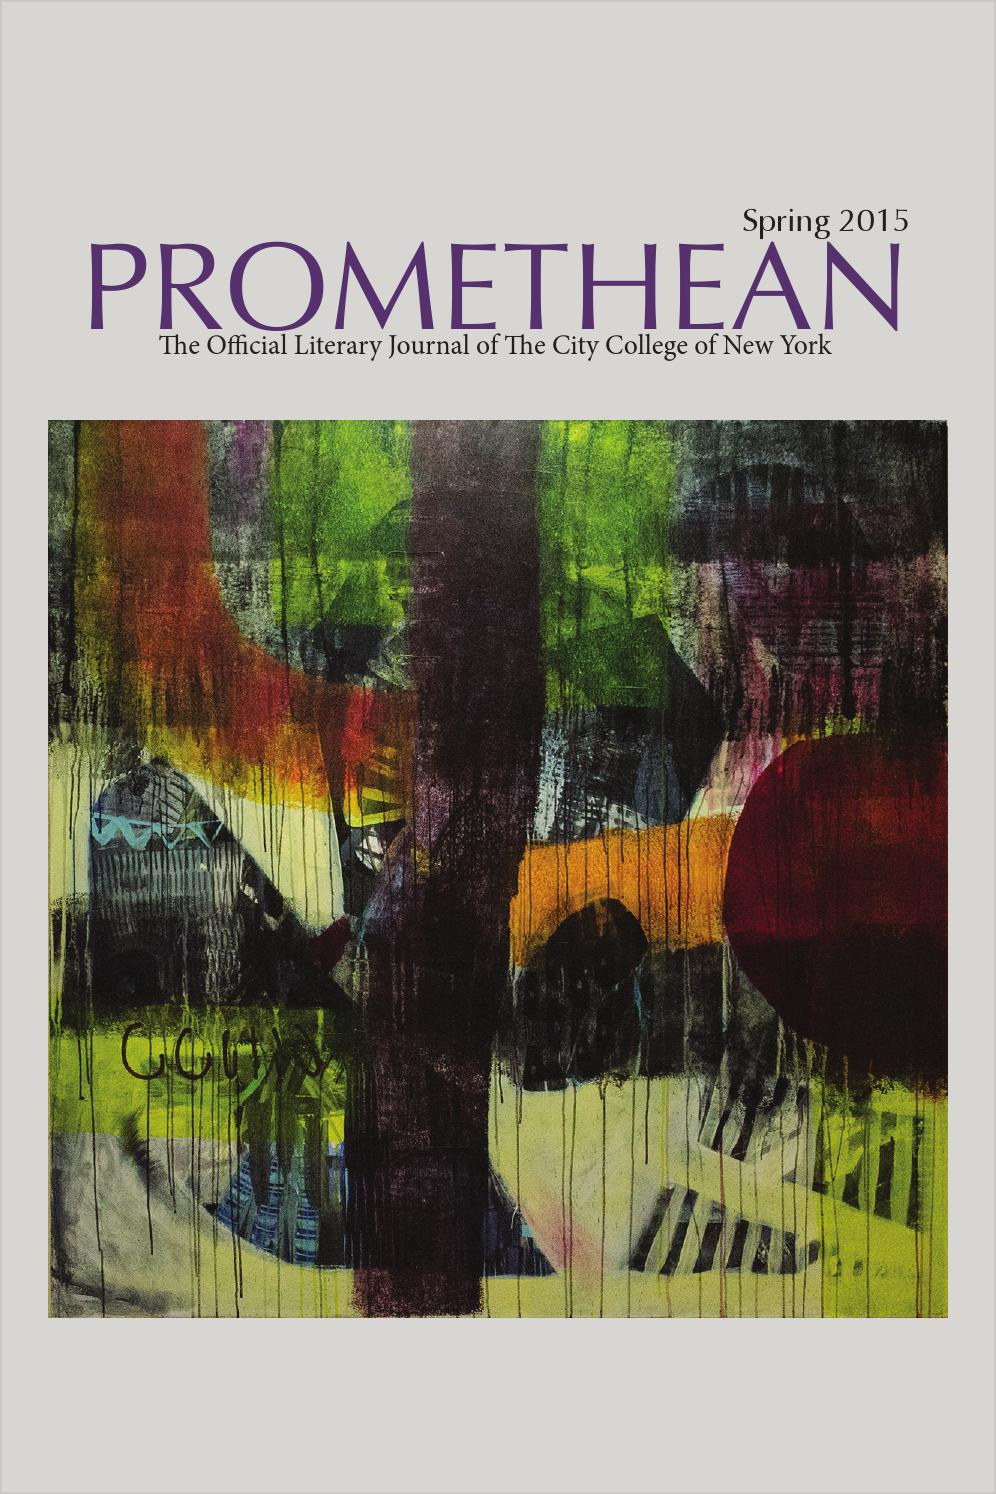 promethean volume 43  spring 2015 issue by promethean